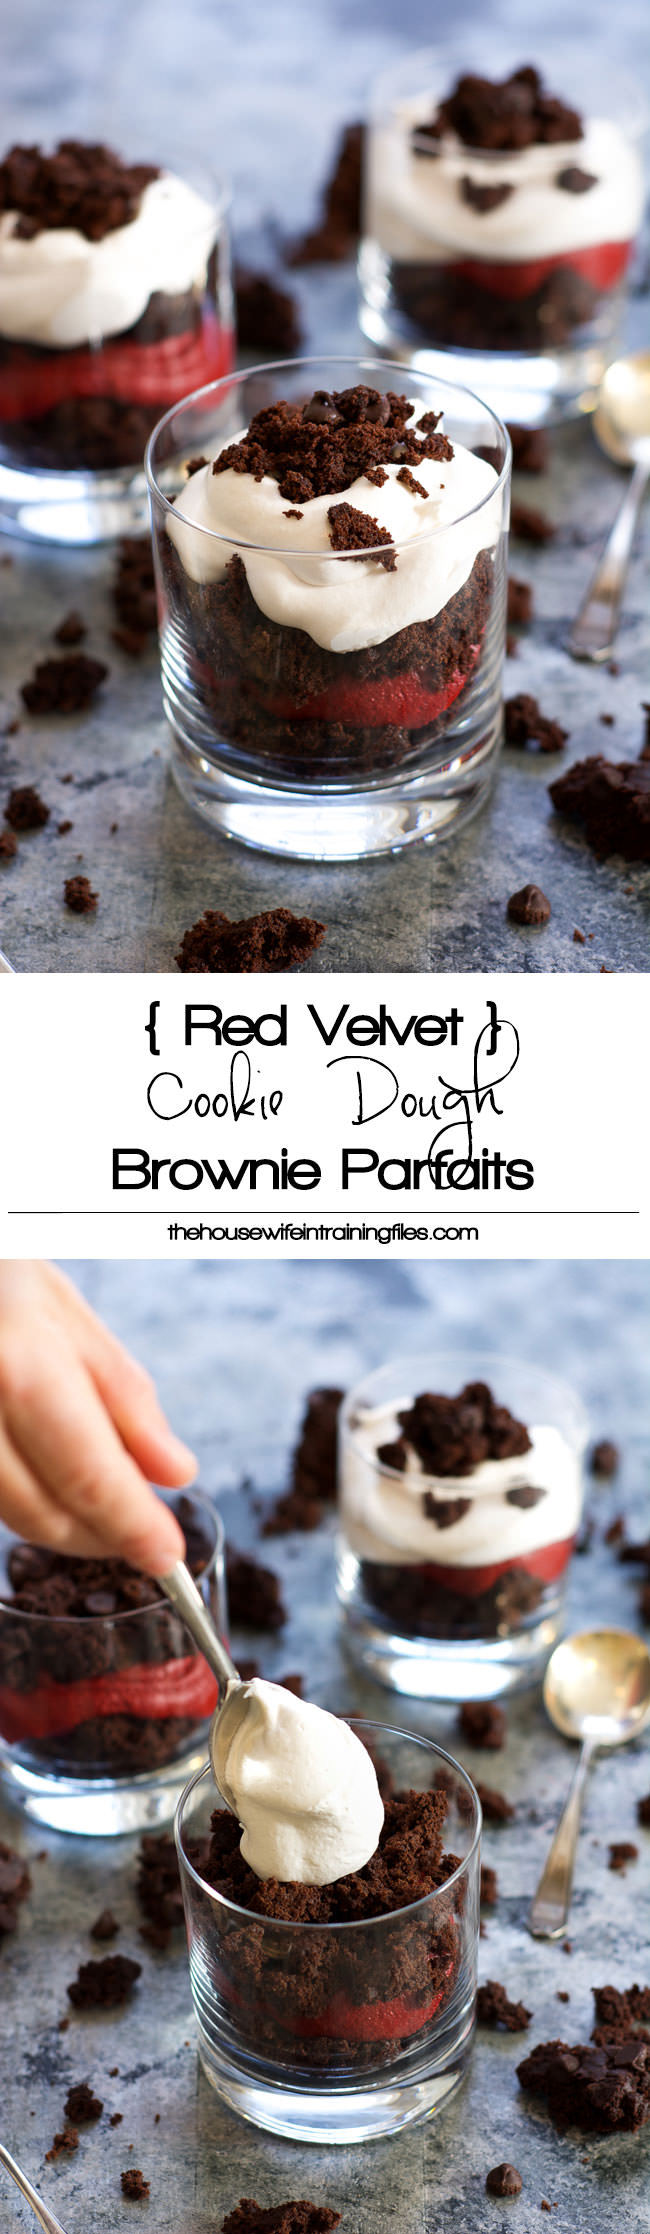 A simple three ingredient dessert that is perfect for a date night in or to just cure that sweet tooth! Red Velvet Cookie Dough Brownie Parfaits take minutes to put together with already made ingredients!